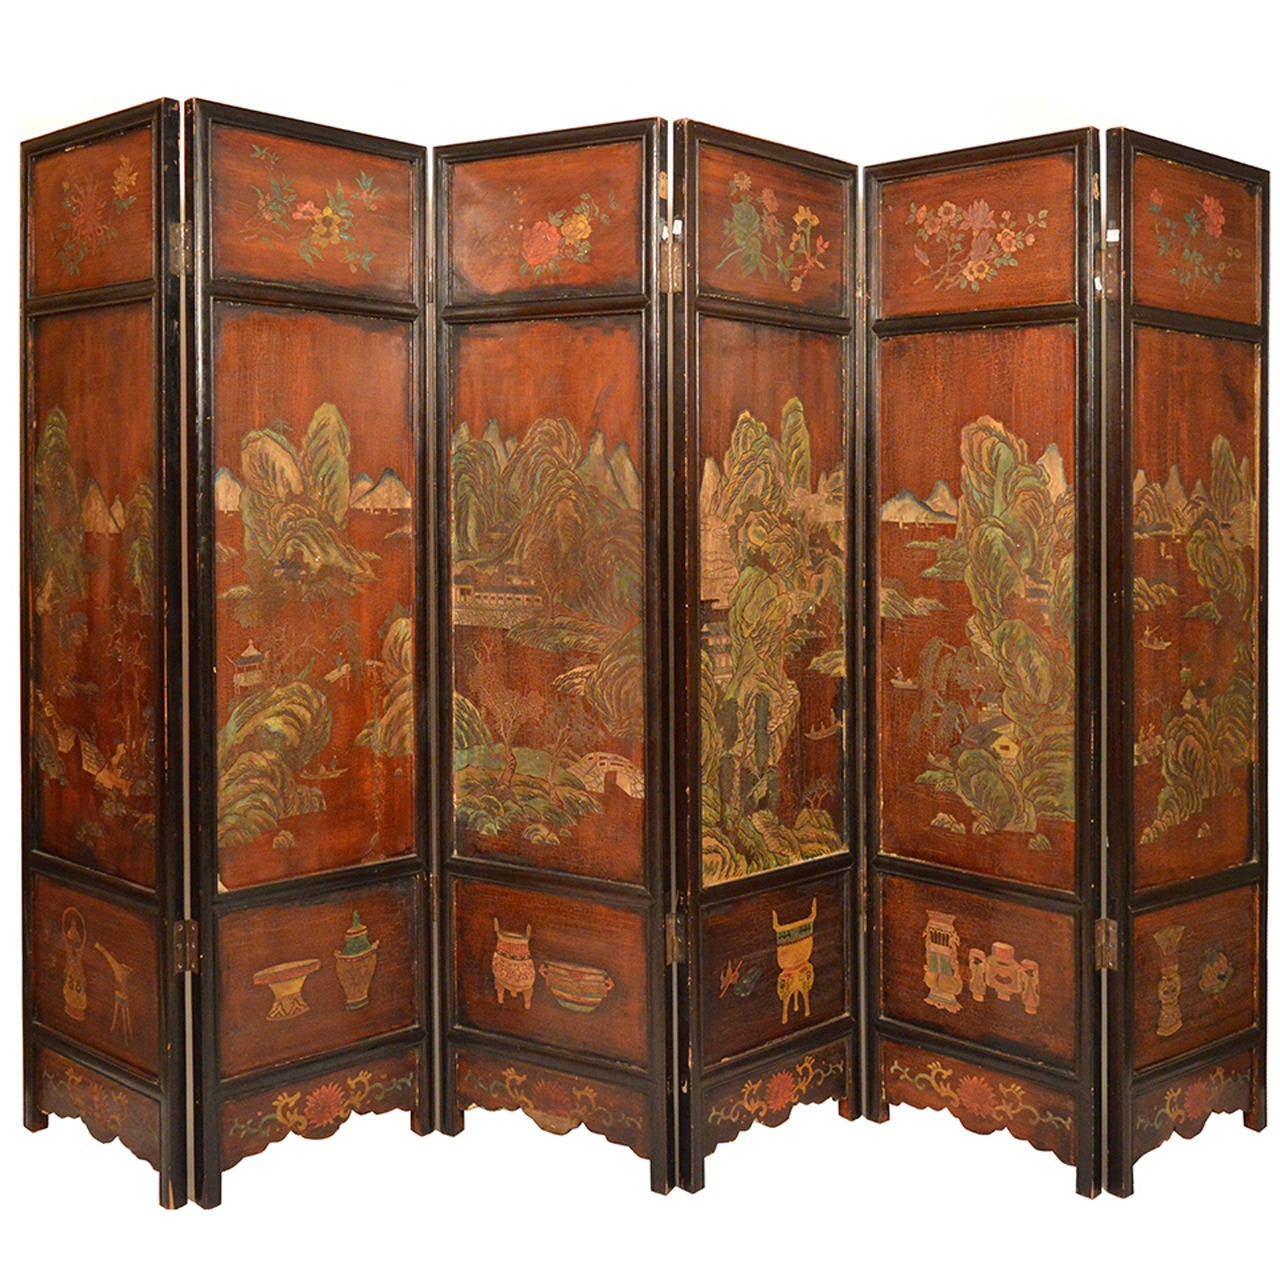 19th Century Chinese Qing Dynasty Coromandel Folding Screen 1